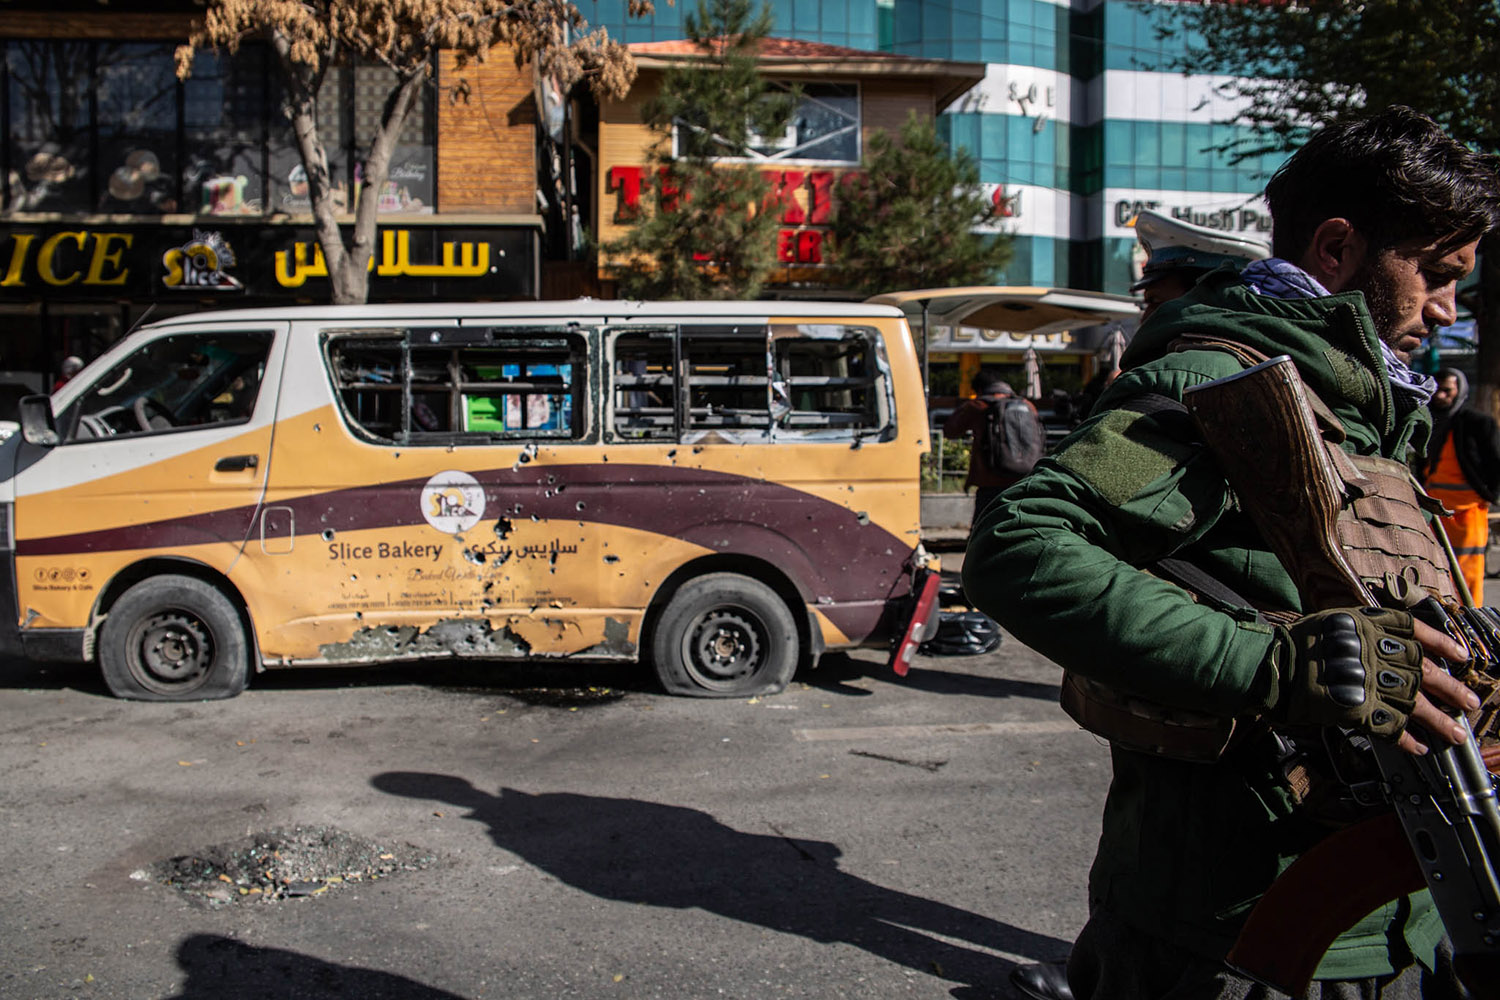 Security forces stand outside Slice Bakery in Share-Naw in Kabul, Afghanistan, on Nov. 21, 2020, where one of 23 rockets hit, damaging a delivery van and injuring several people. This attack prompted Jawad Jalali to relocate his family to Turkey.